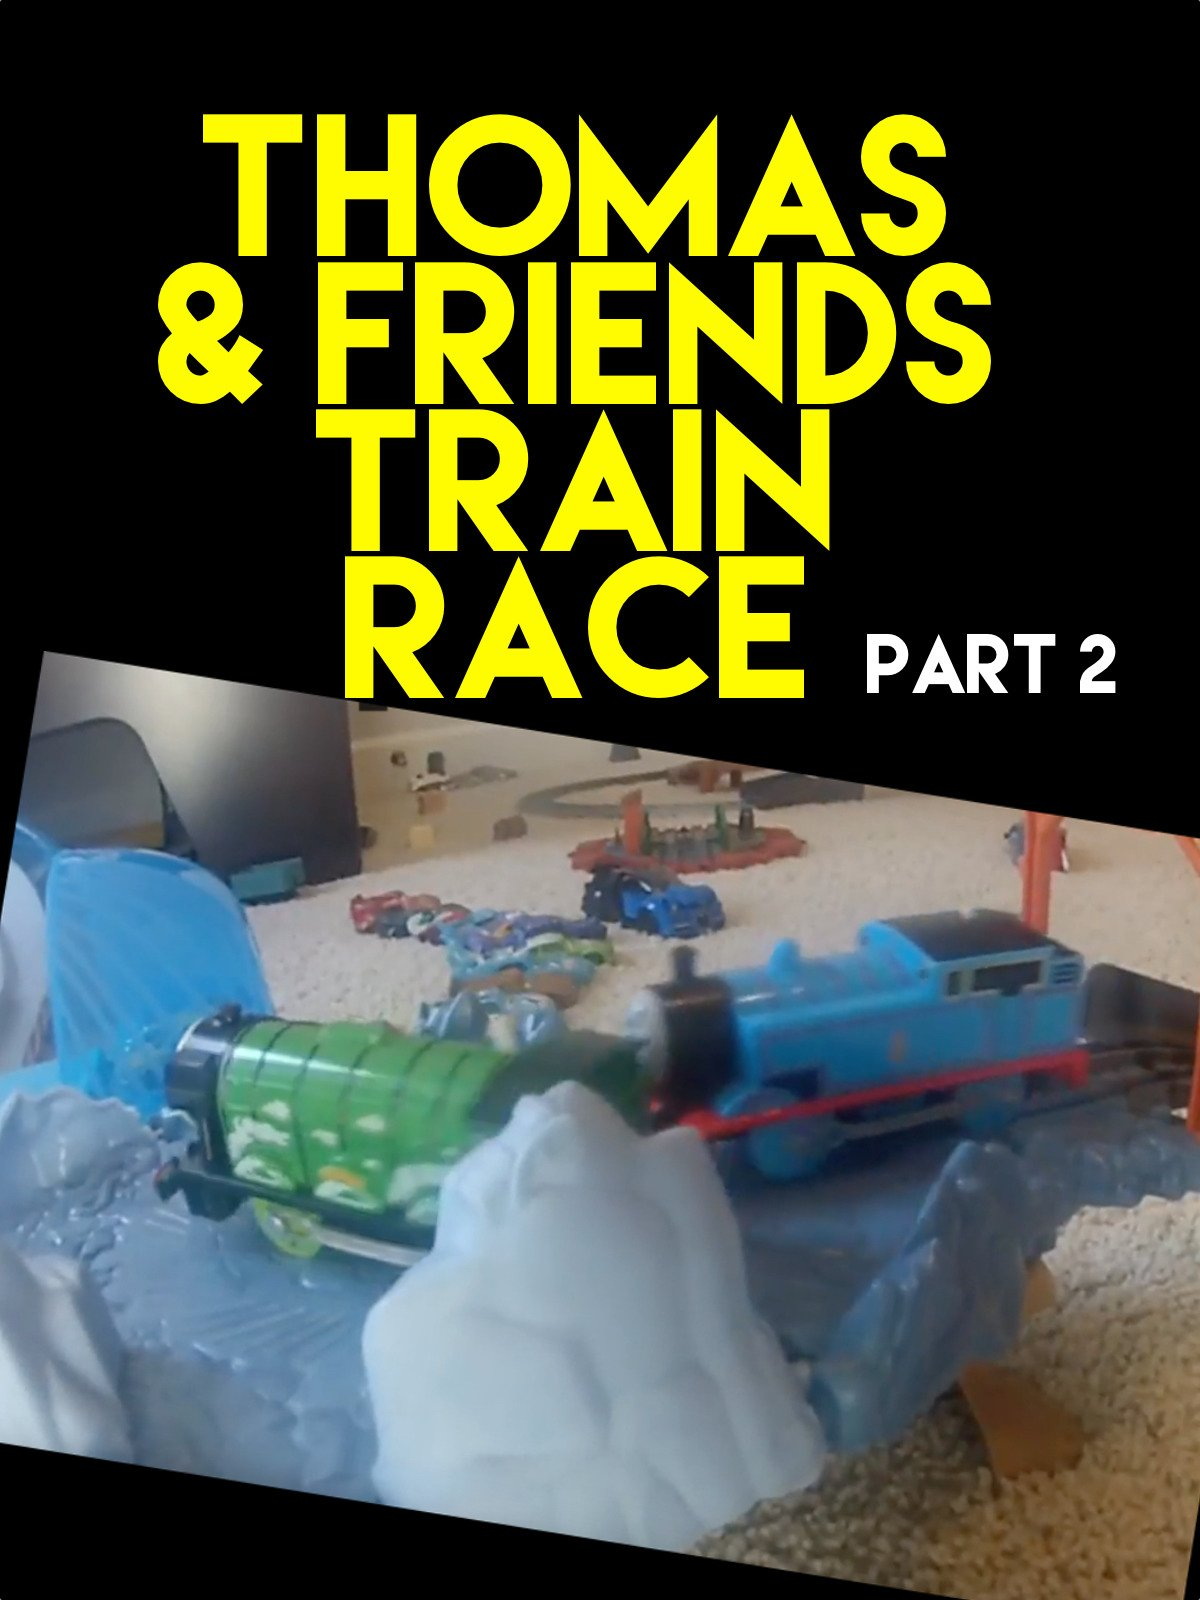 Clip: Thomas and Friends Train Race part 2